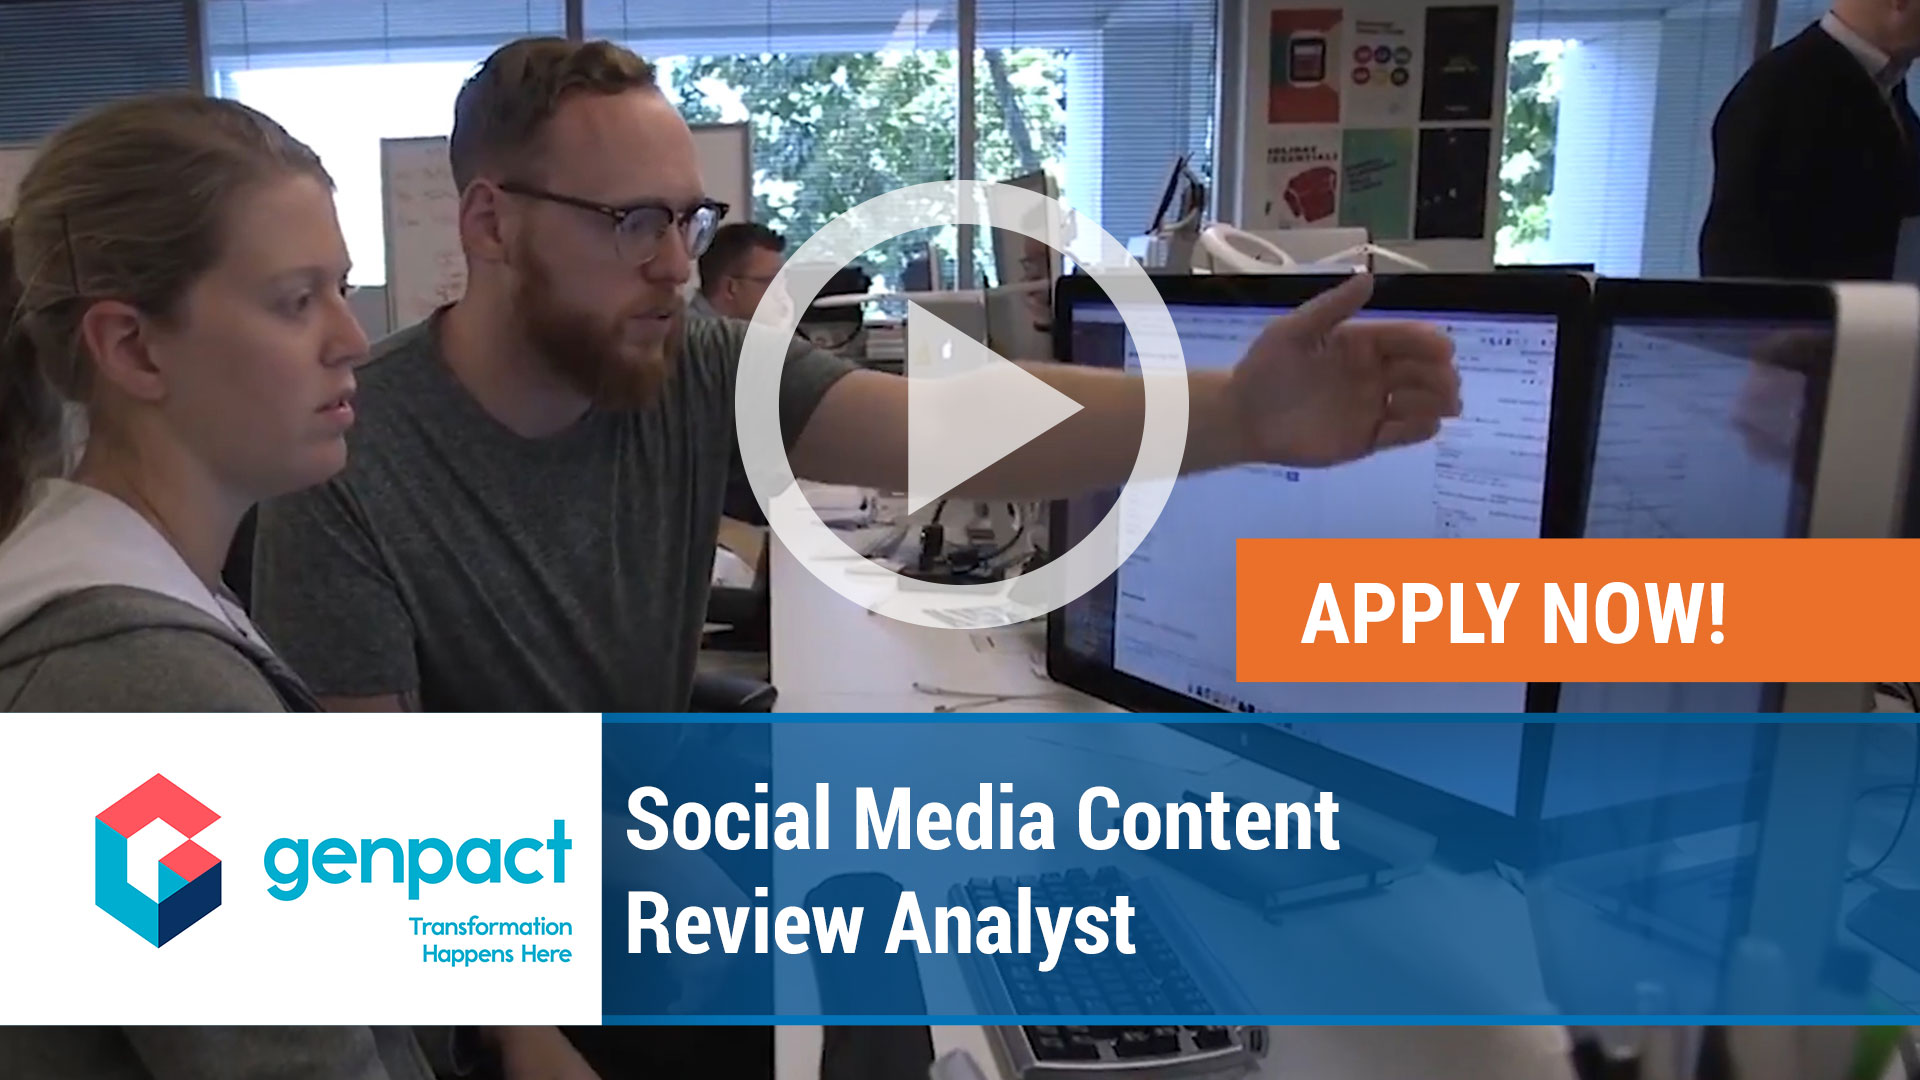 Watch our careers video for available job opening Social Media Content Review Analyst in Richardson, Texas